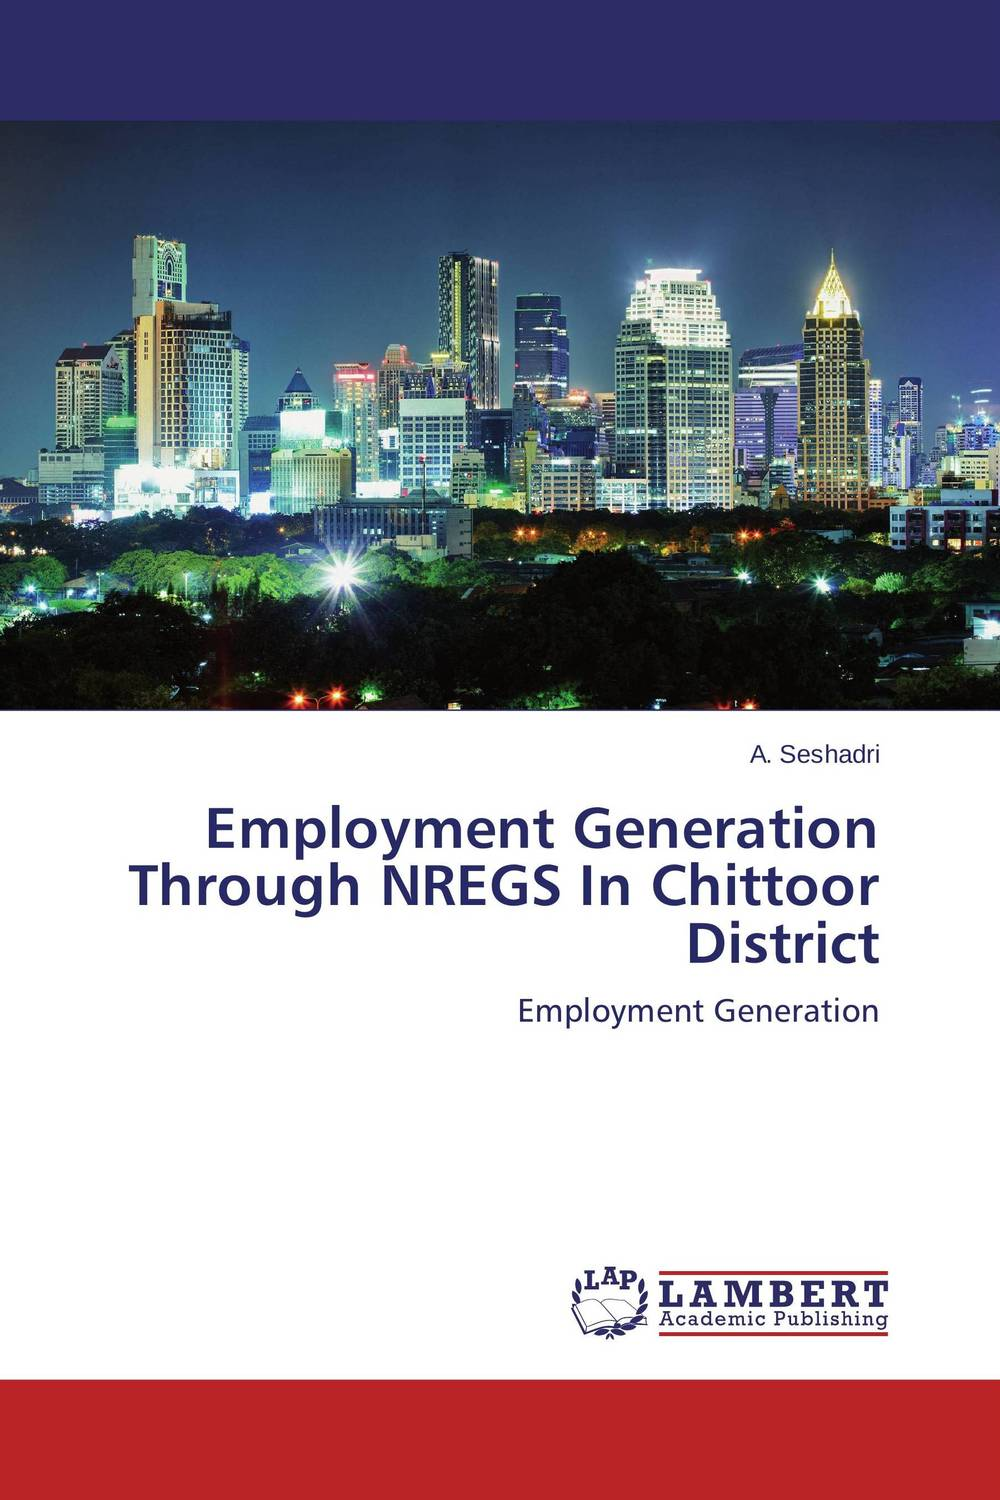 Employment Generation Through NREGS In Chittoor District financial performance of lanco industries limited in chittoor district